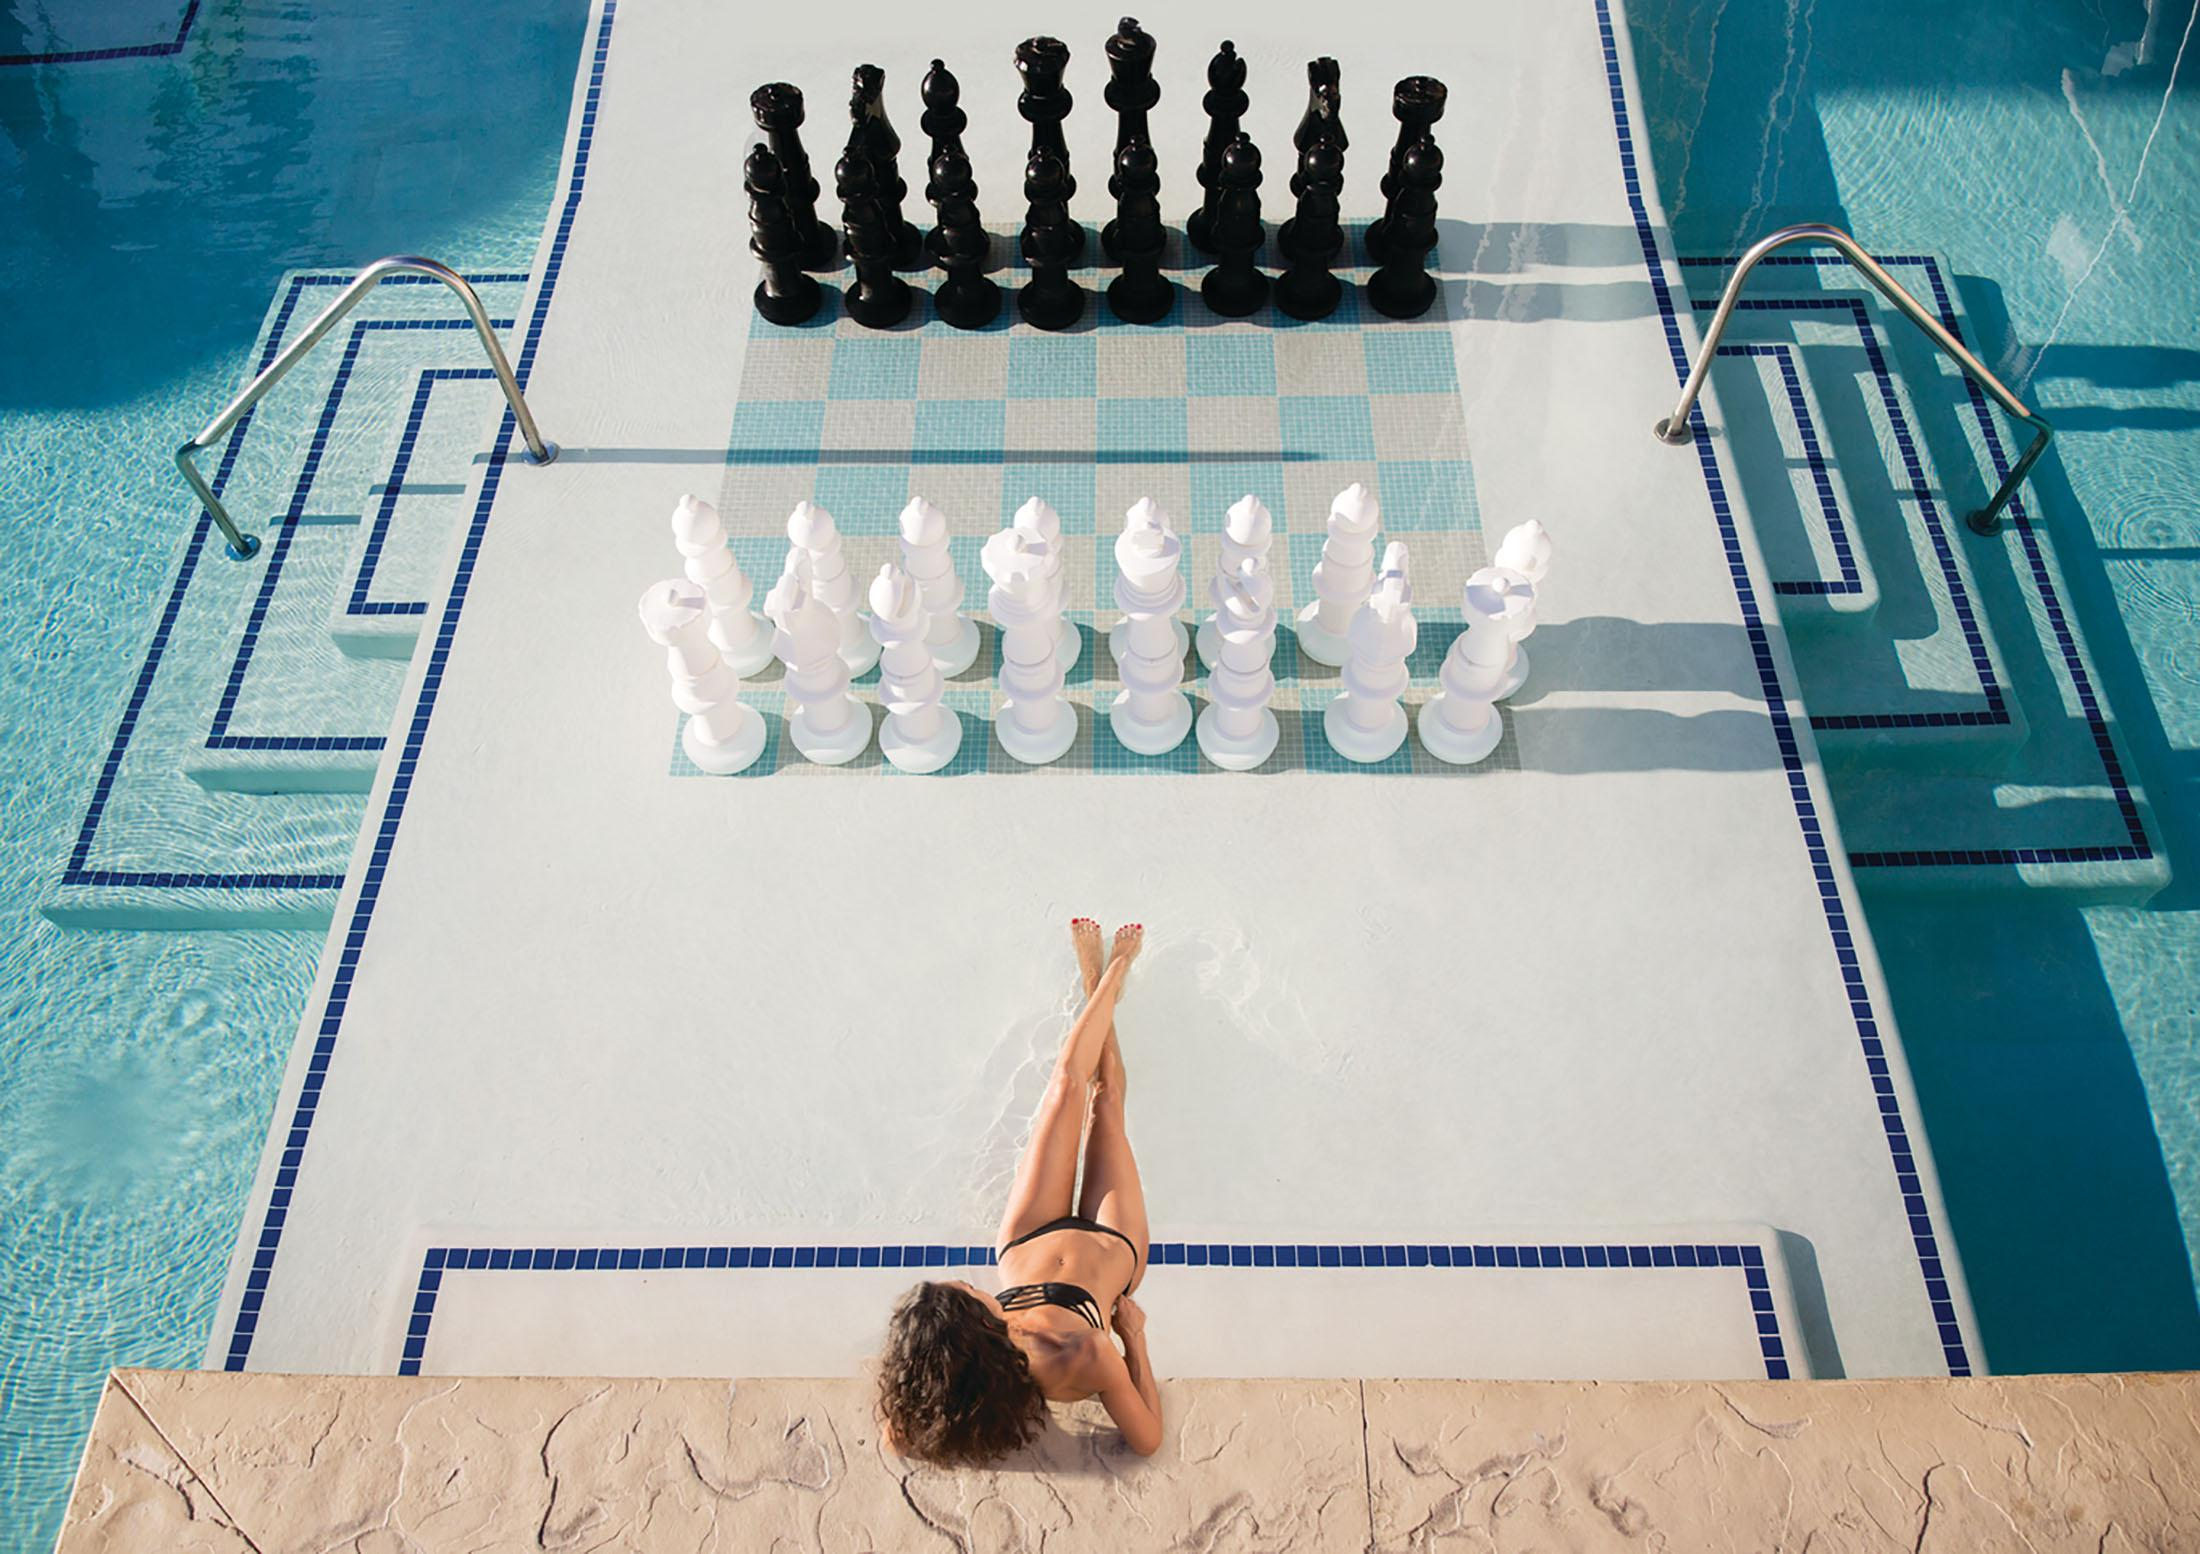 Woman sits in a pool in front of a giant chess set